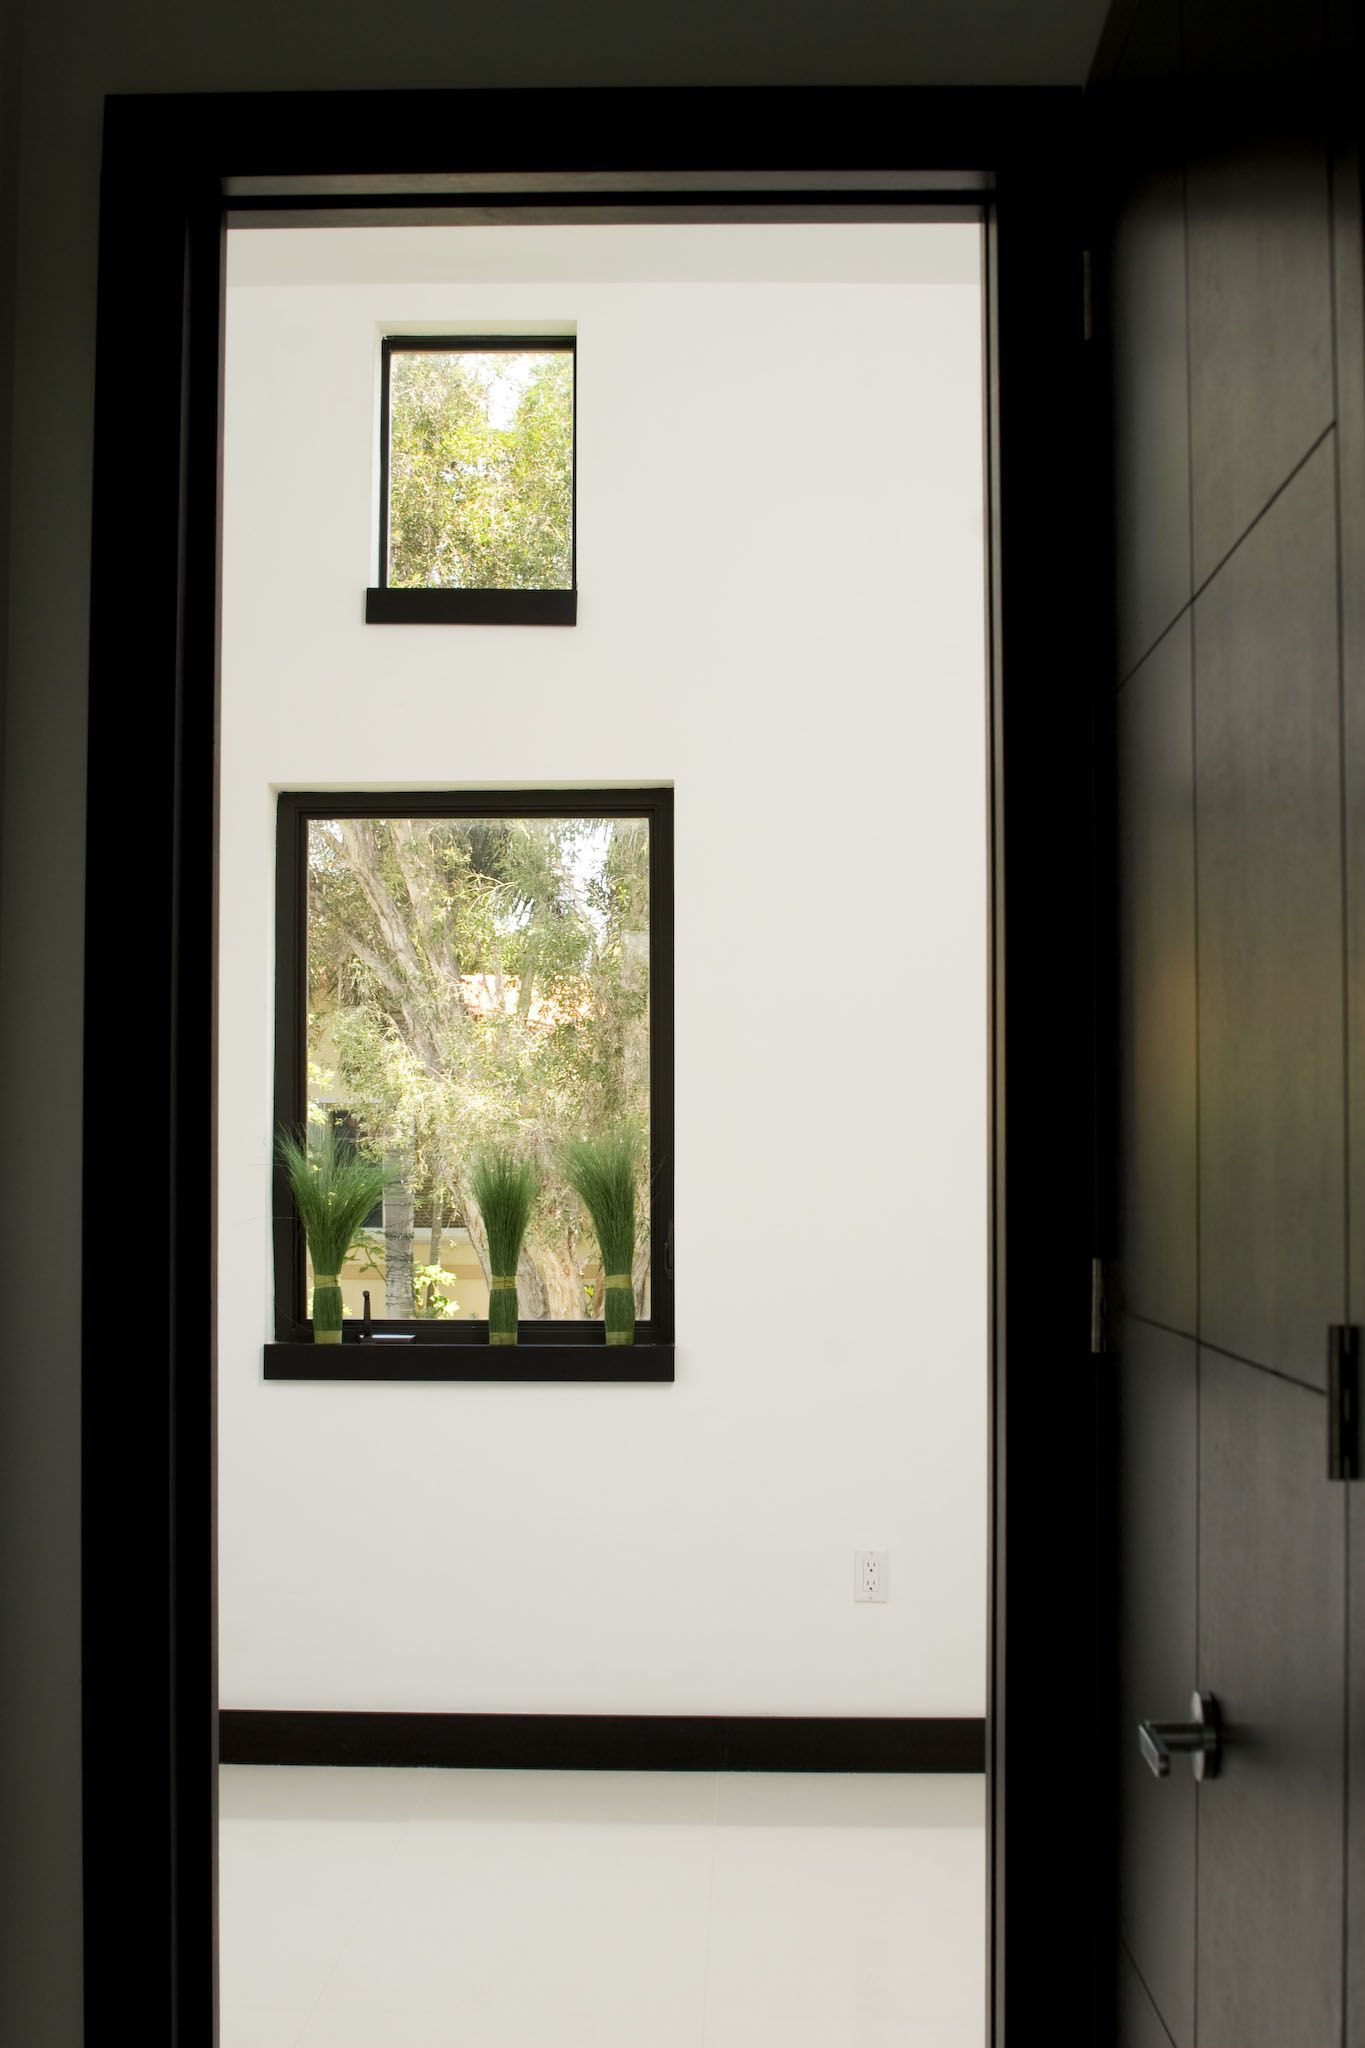 Explore Impact Windows, Laminated Glass, And More